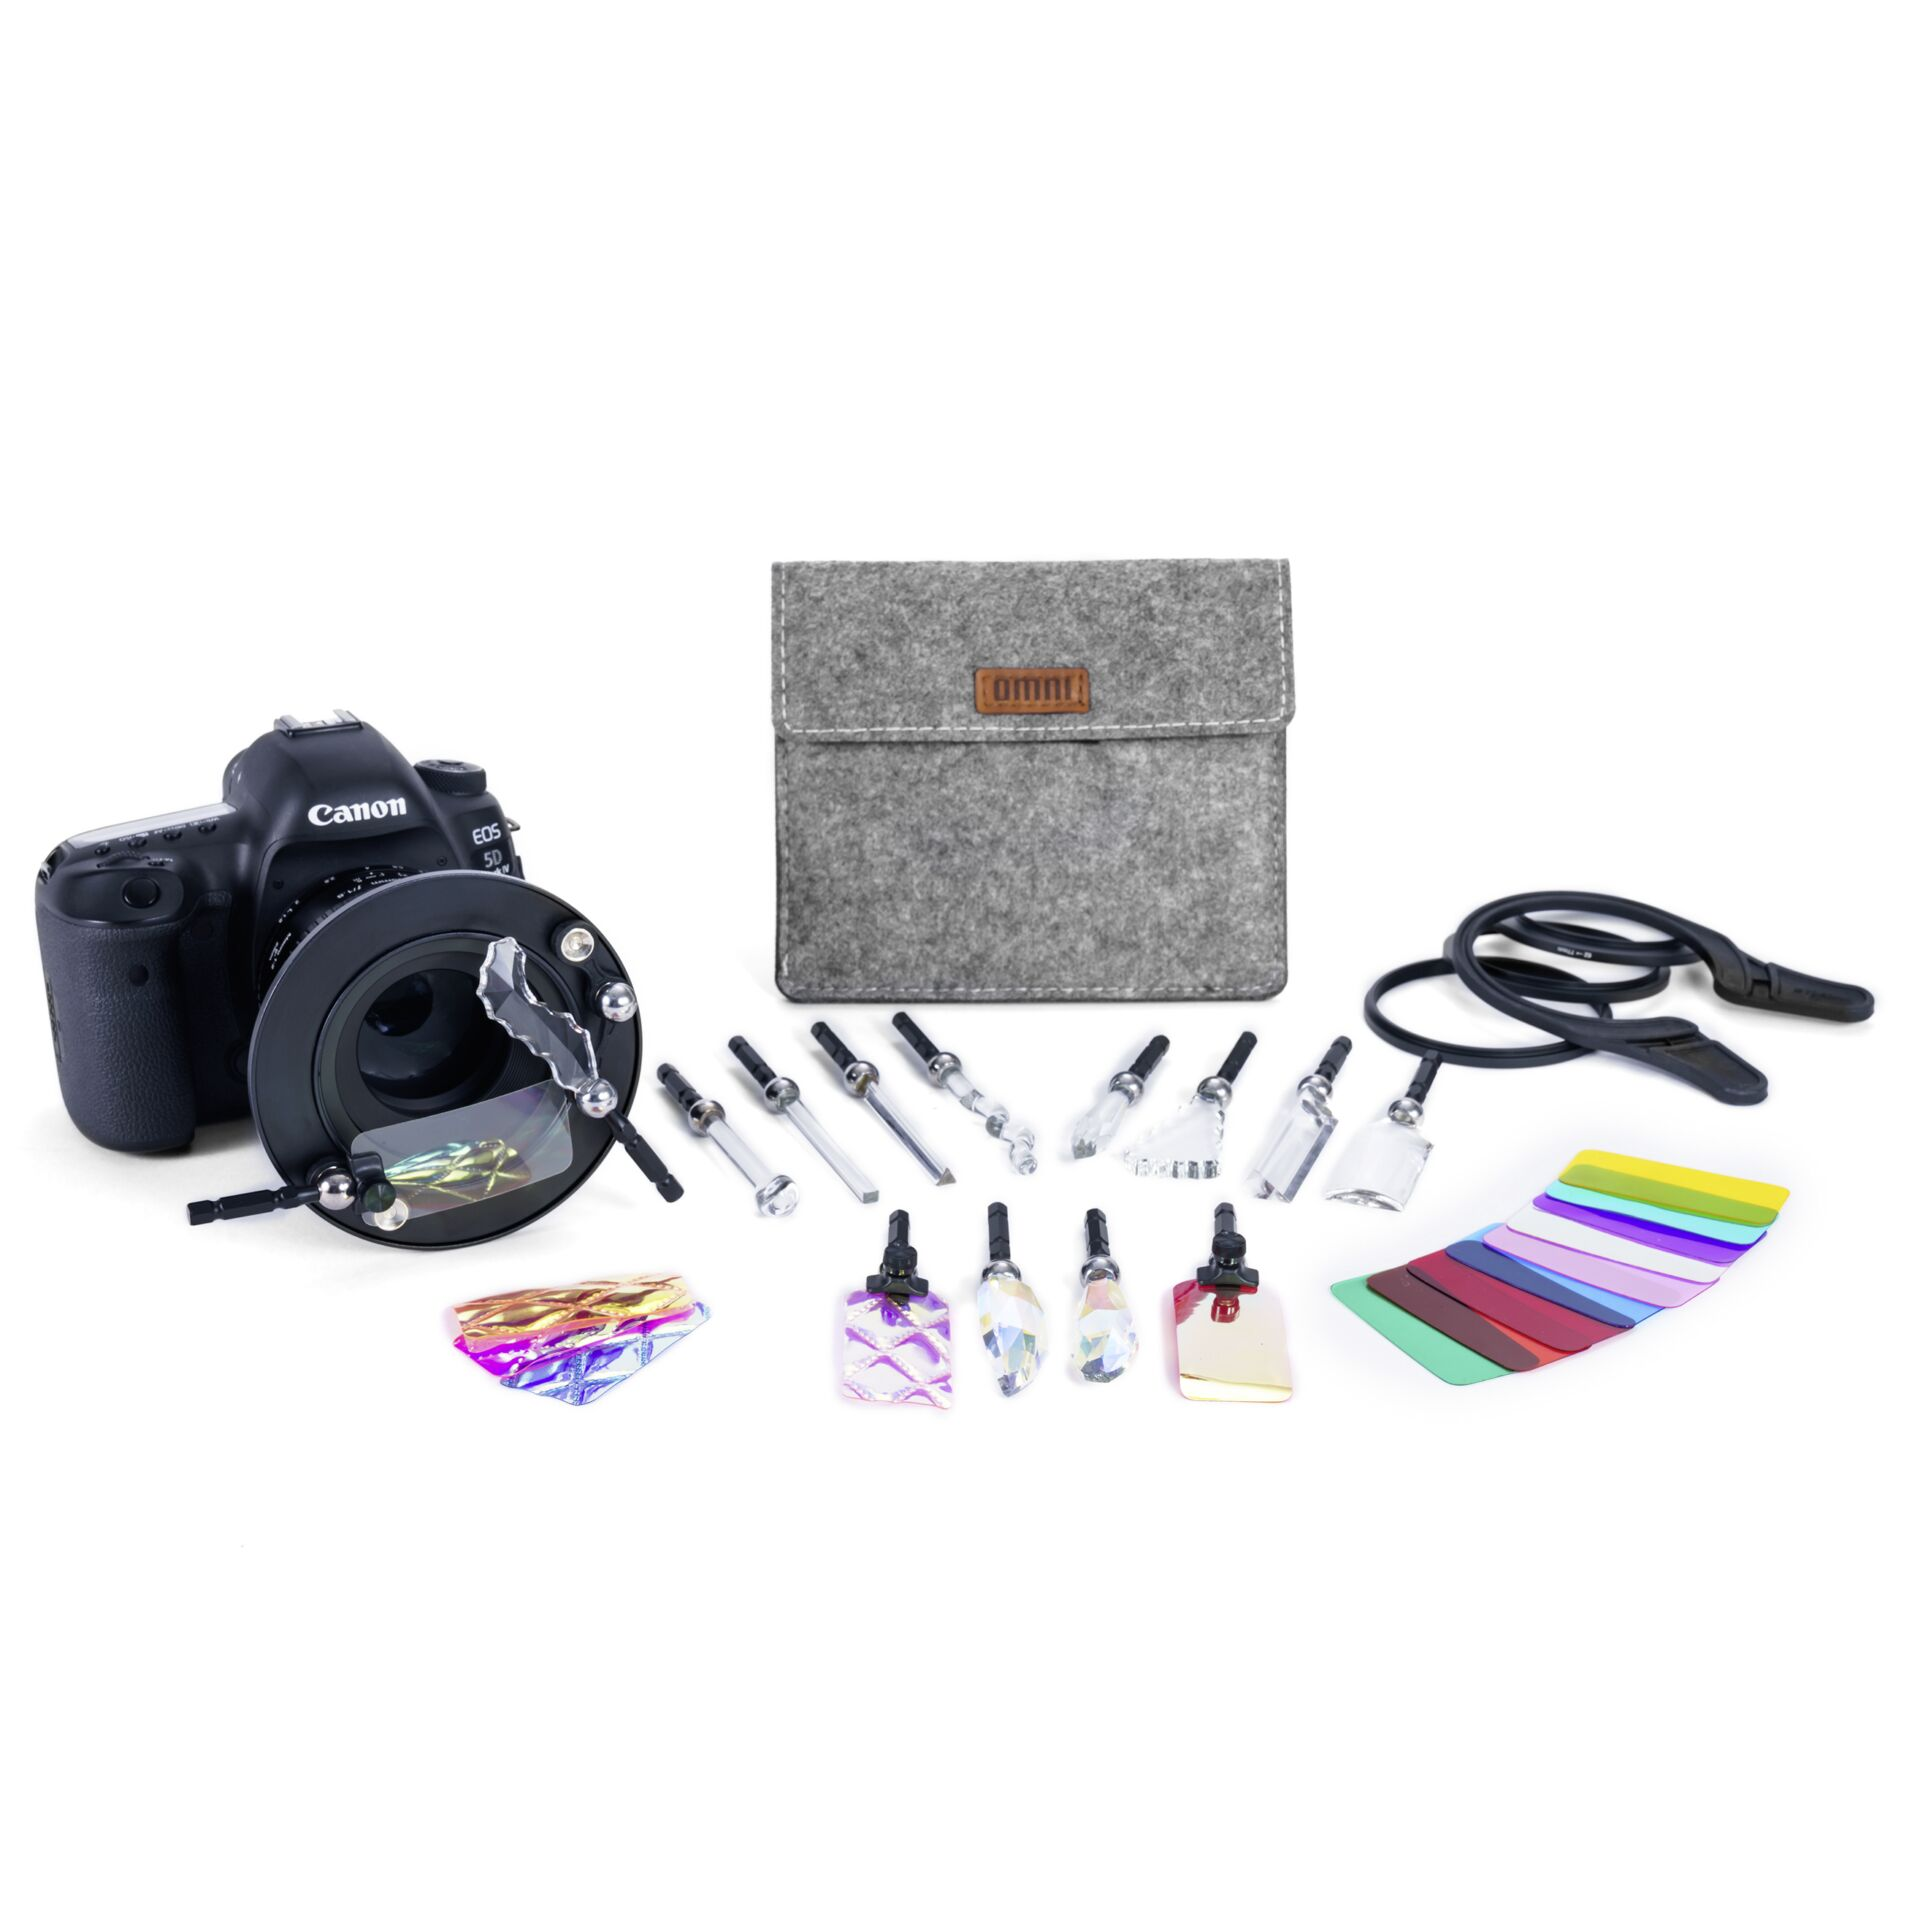 Lensbaby OMNI Deluxe Collection Small